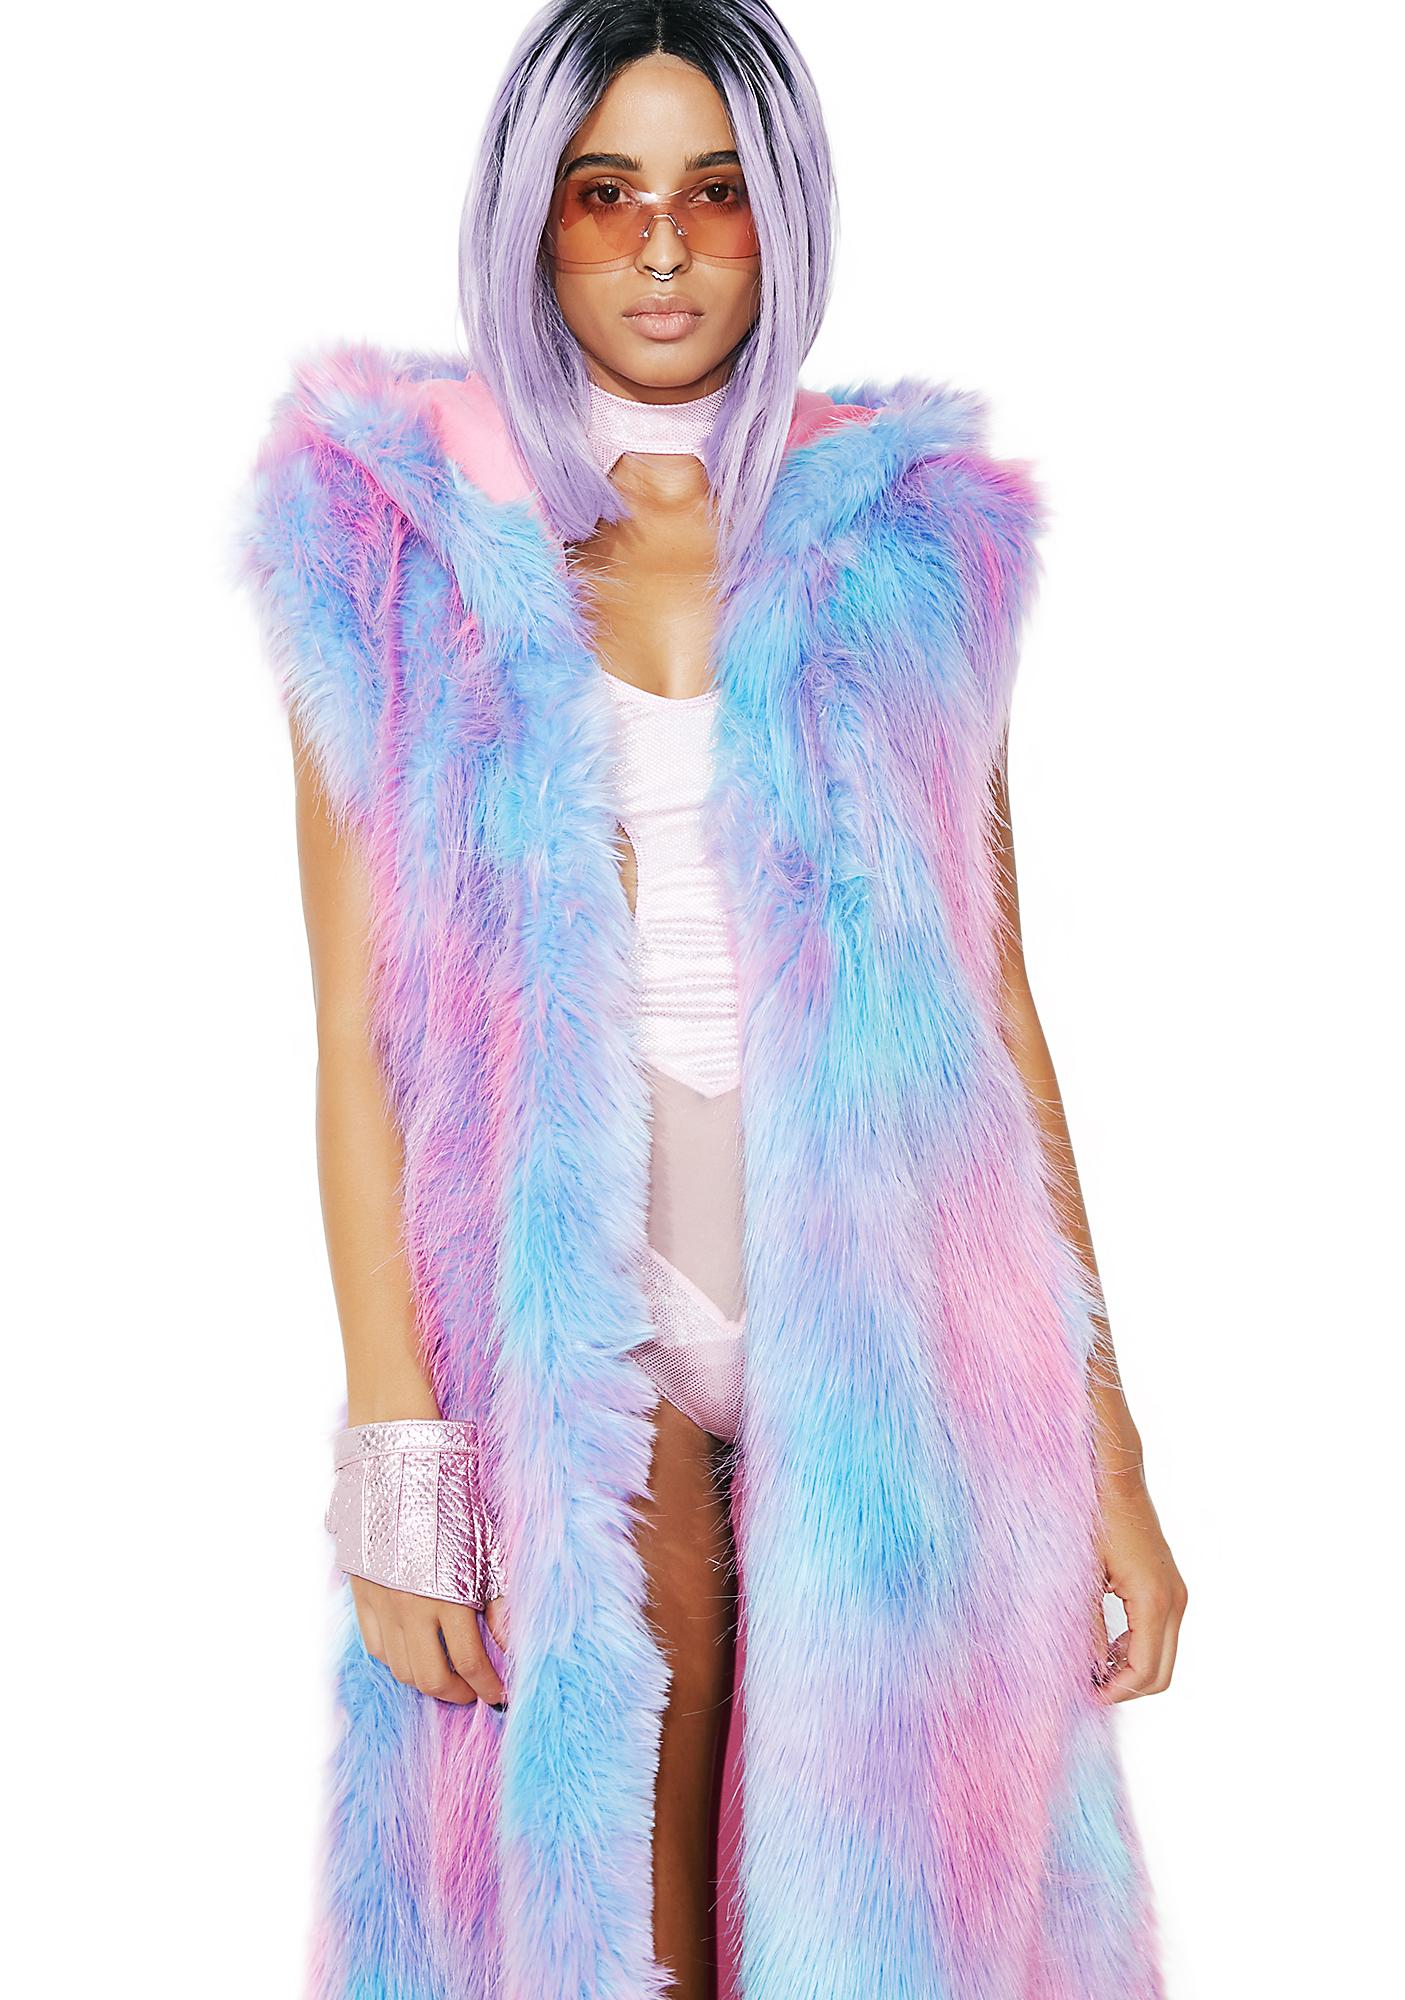 J Valentine Cotton Candy Fur Duster